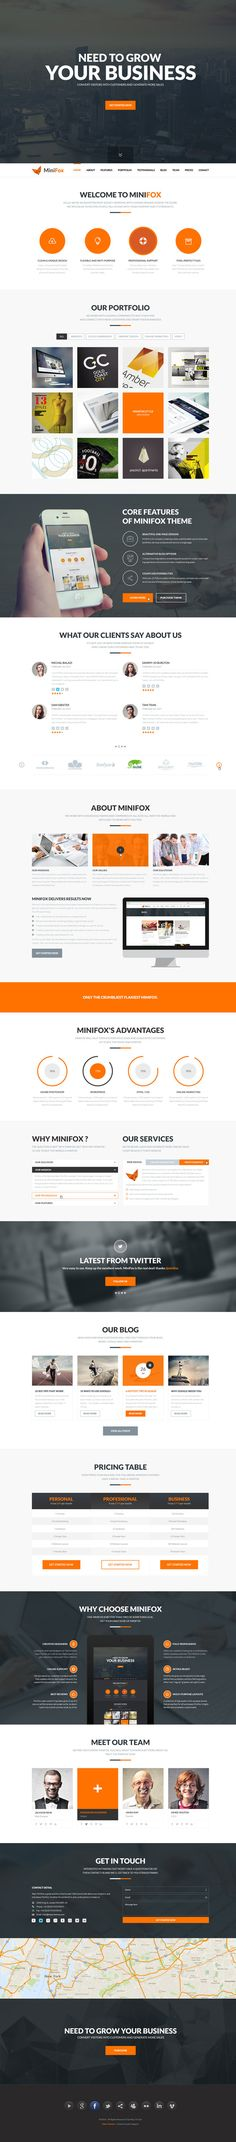 MiniFox   One Page Multi-Purpose PSD Template. If you like UX, design, or design thinking, check out theuxblog.com